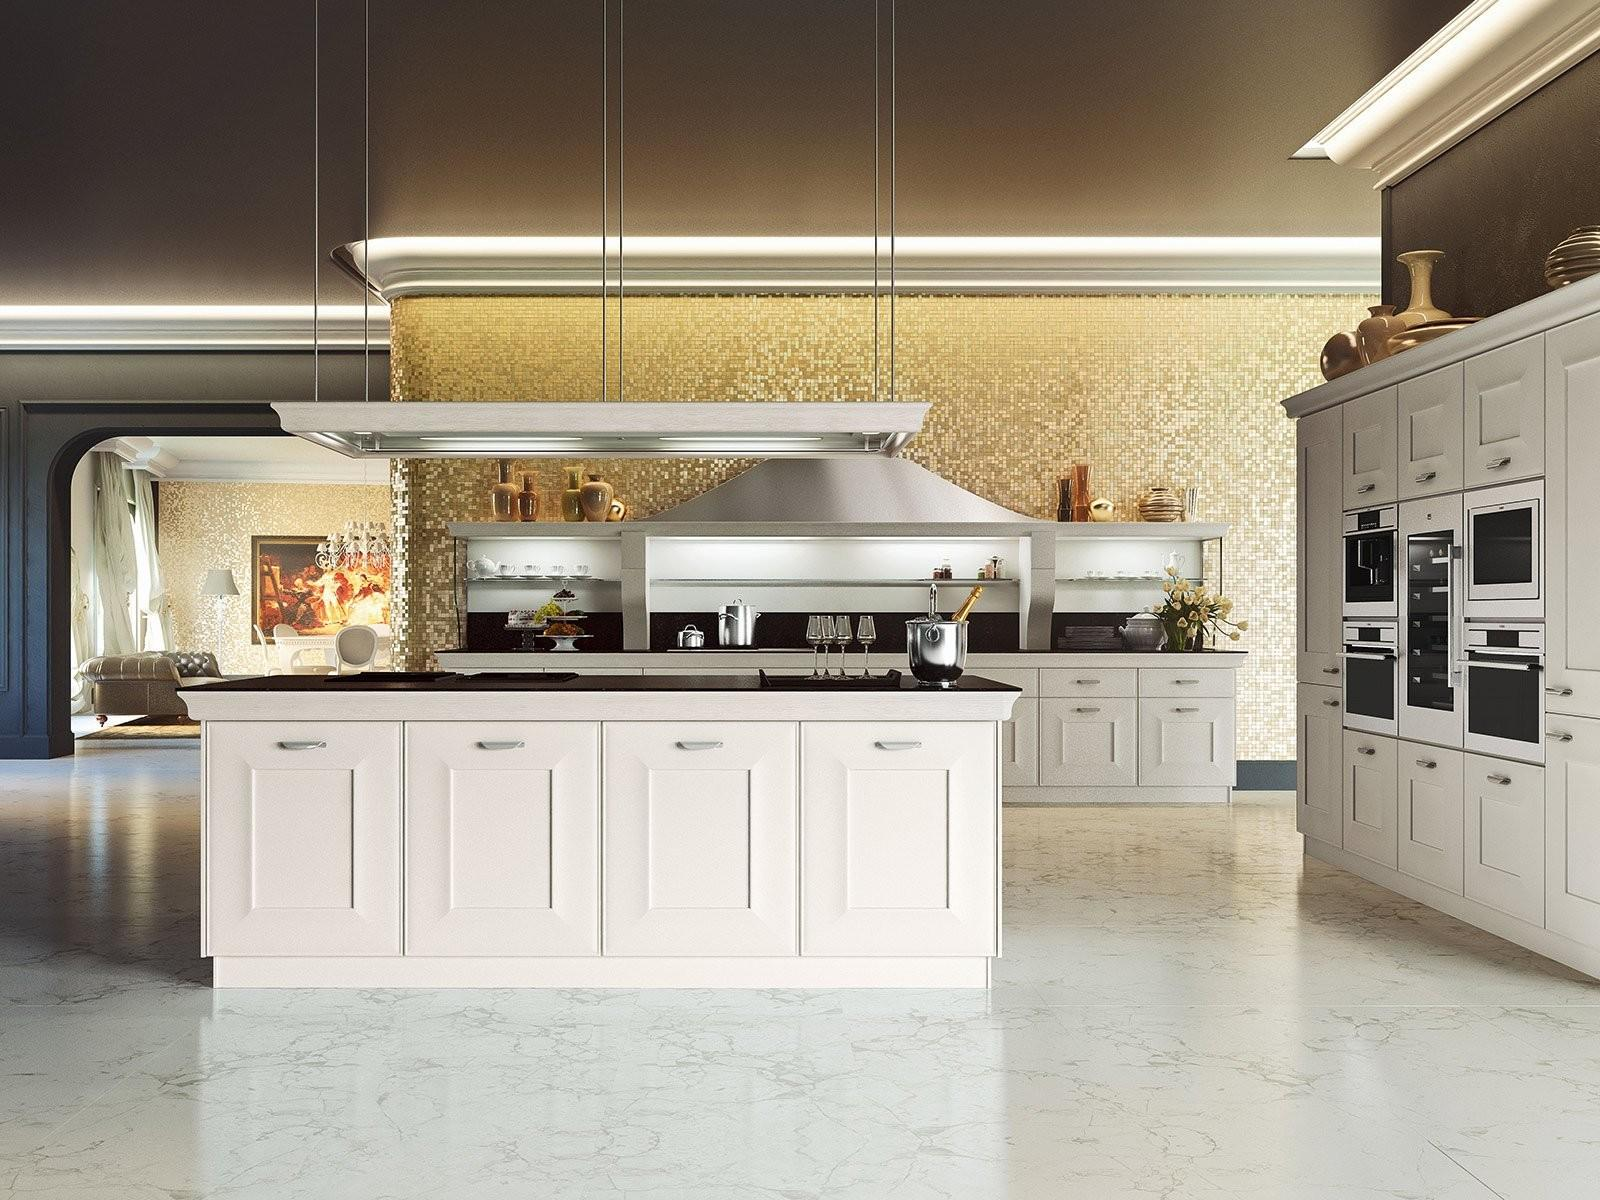 35 Very Awesome Modern Classic Italian Kitchen Snaidero That Will Spice Up Your Bookshelves Trends For 2021 Fantastic Pictures Decoratorist